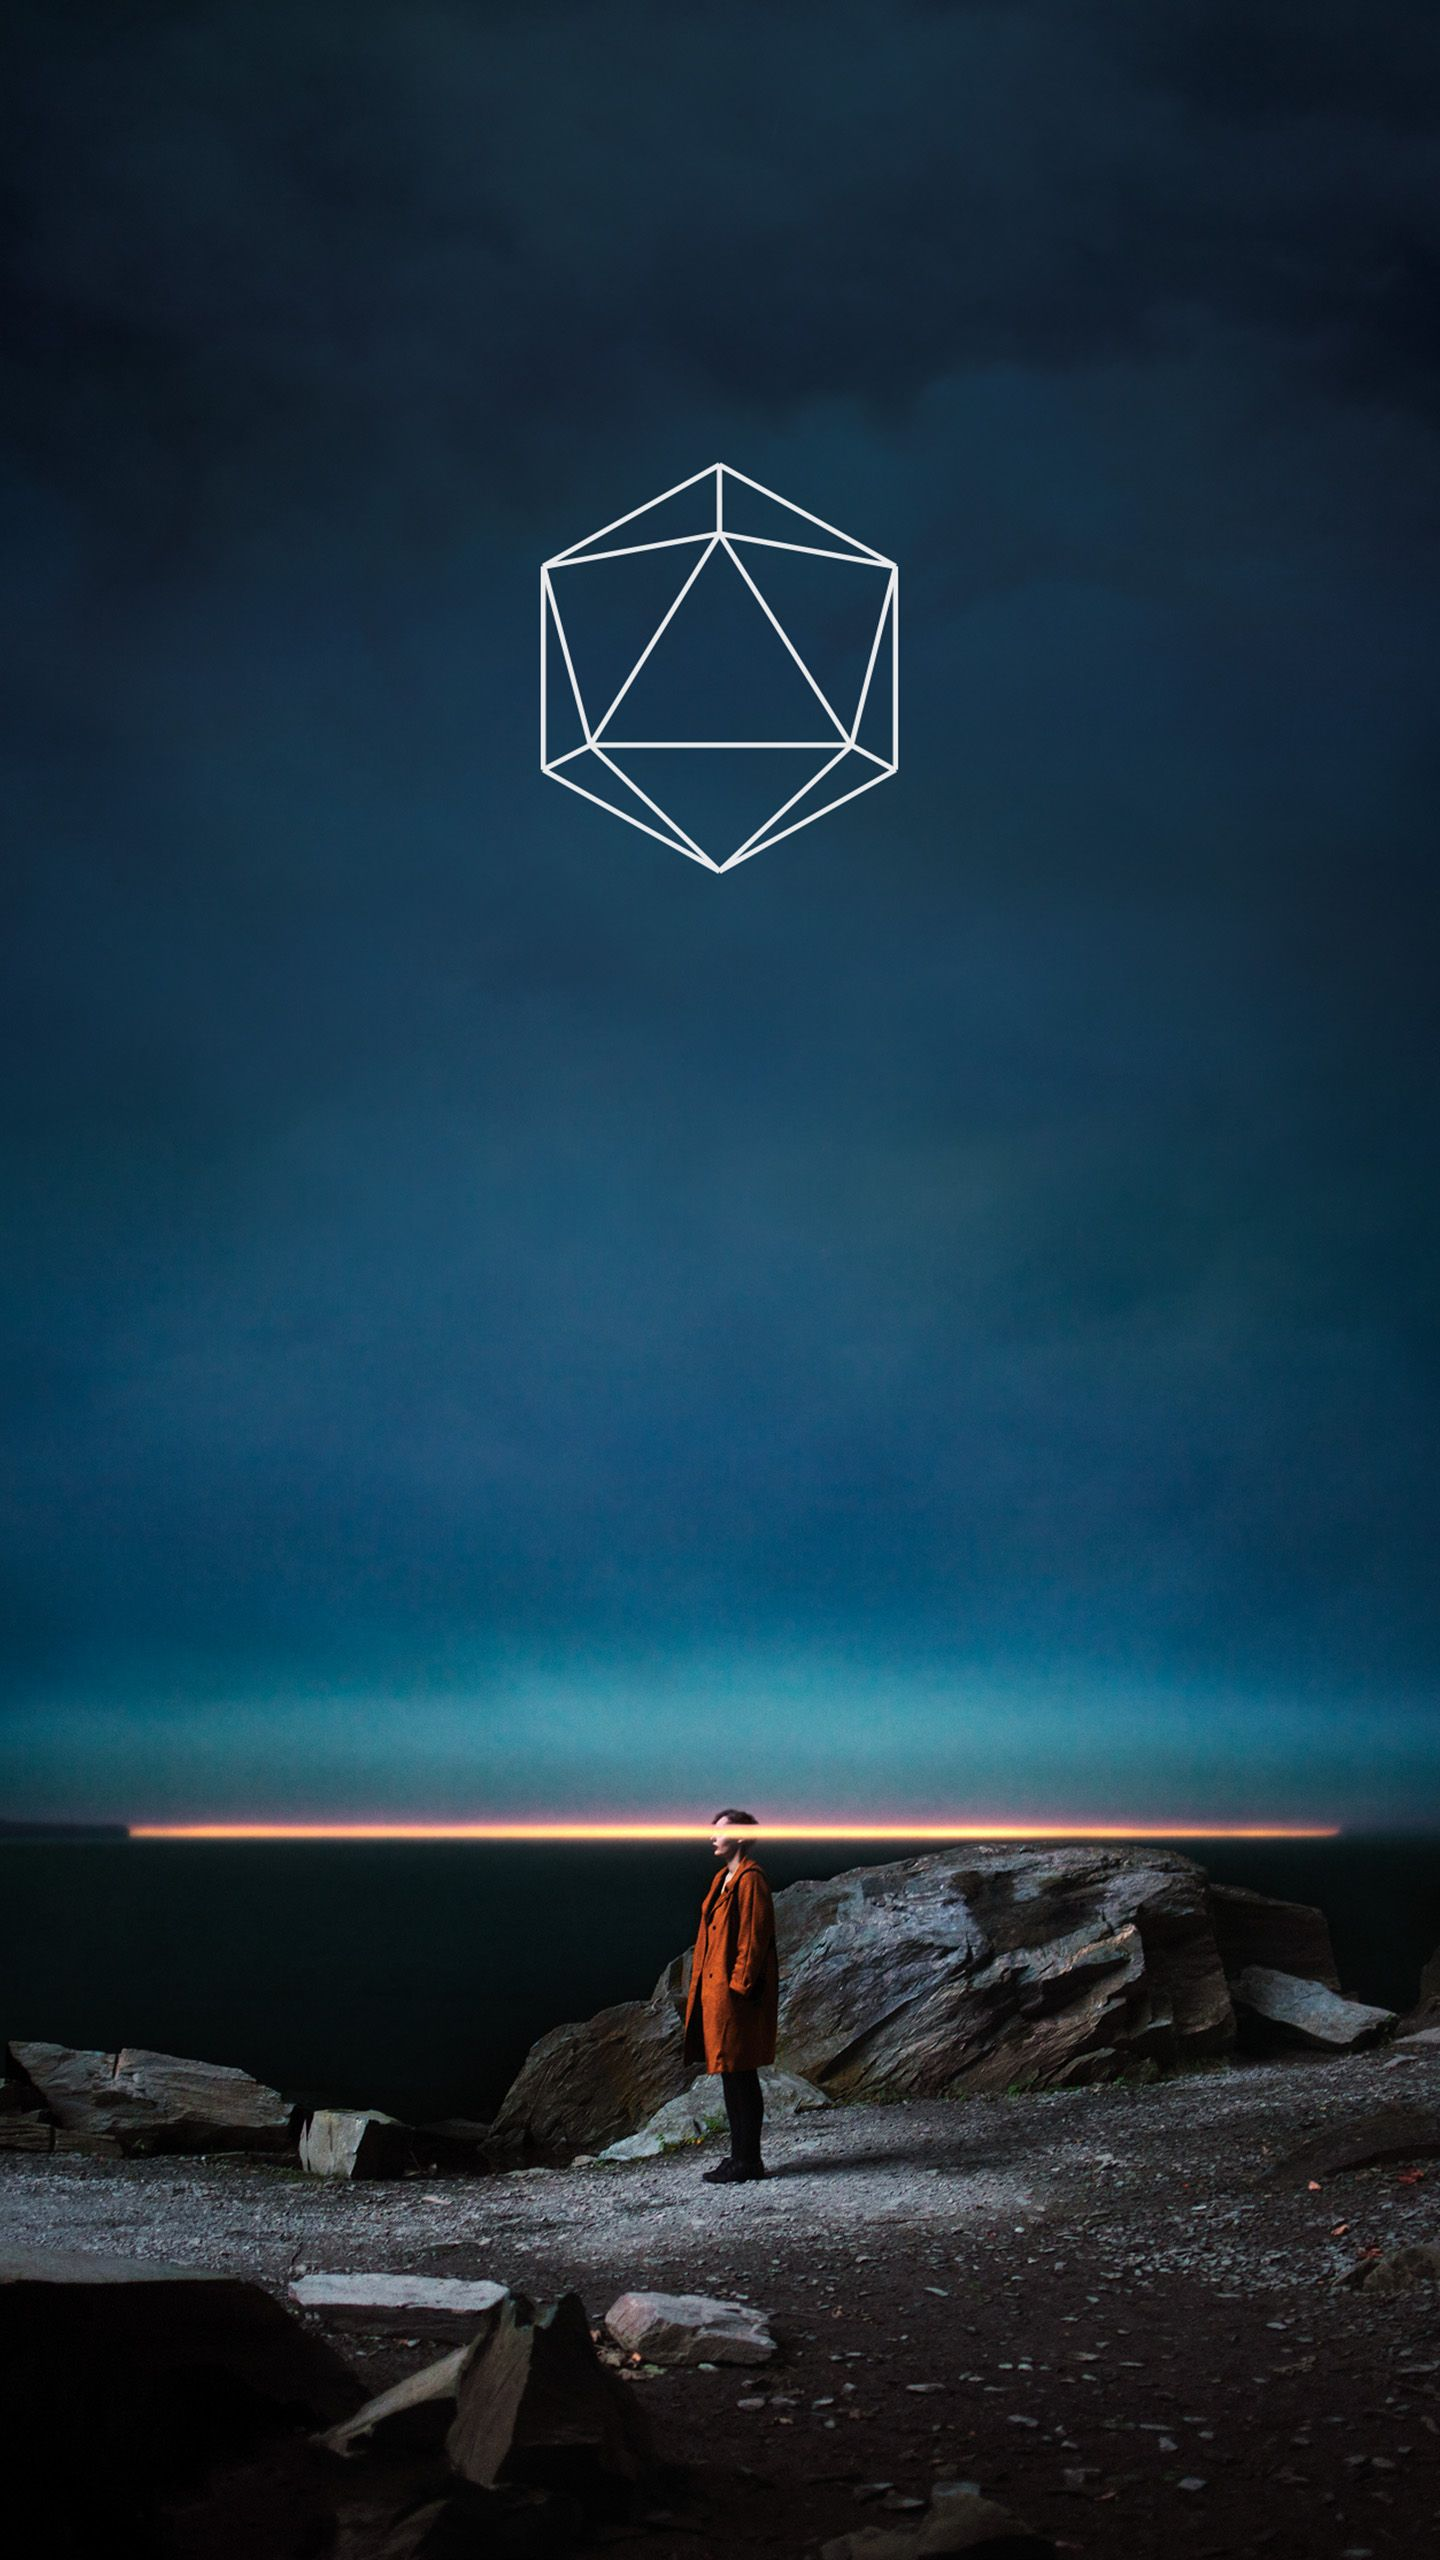 Downloads Odesza Downloads Odesza Odesza Uses Cookies To Trackrmation About Users In Or To Serve Android Wallpaper Abstract Iphone Wallpaper Phone Wallpaper